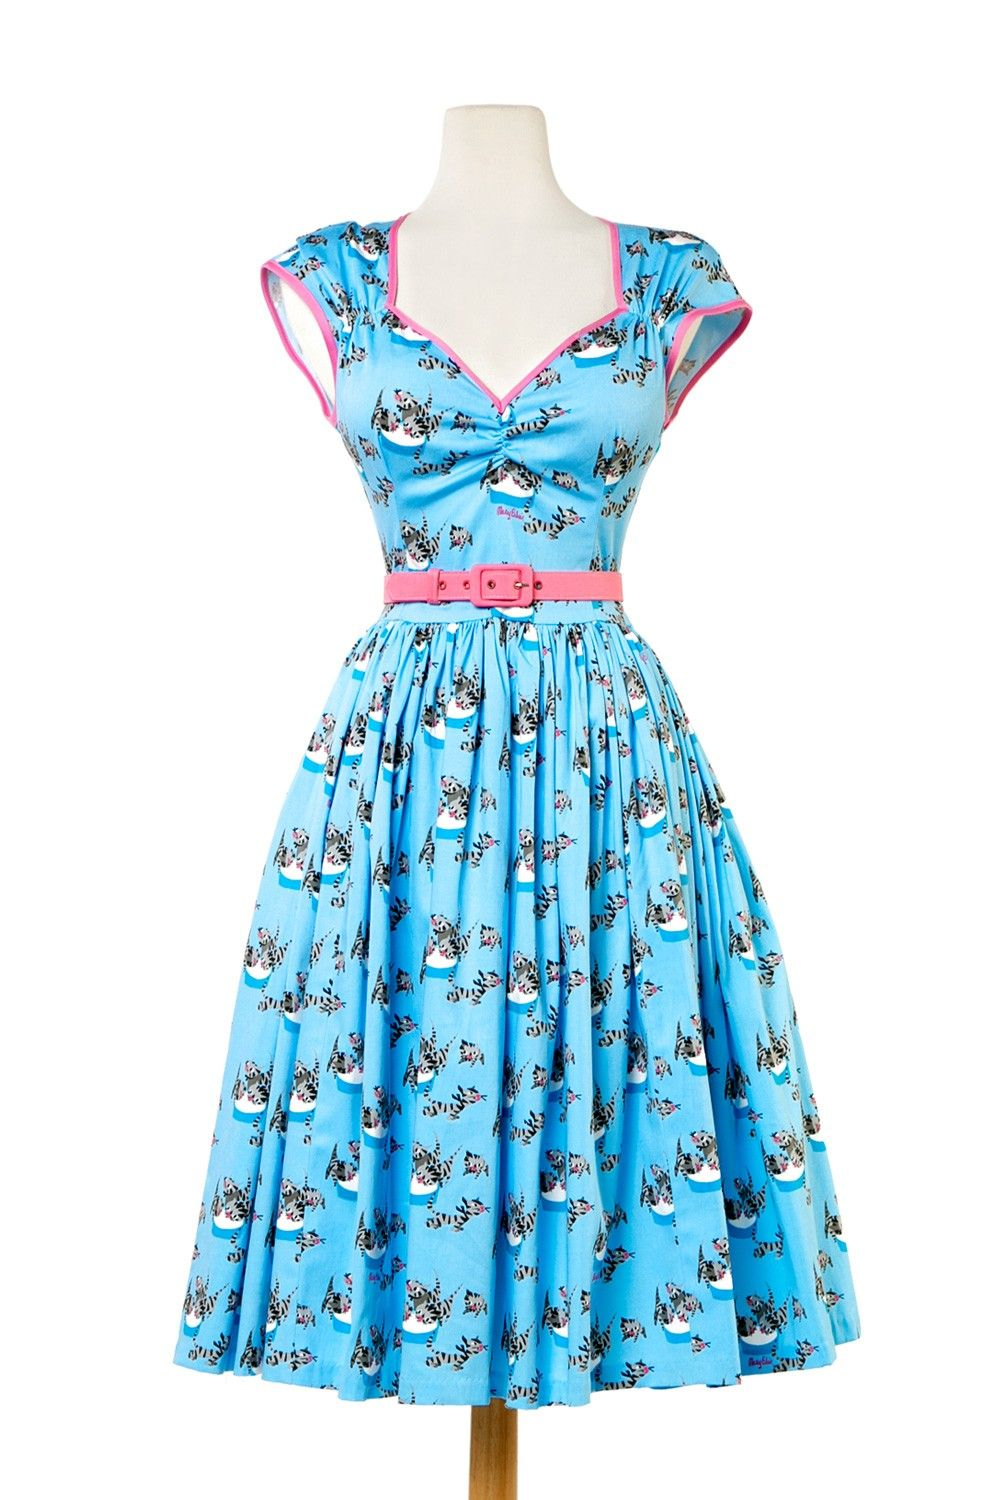 9b65d4c276bdc Pinup Couture Heidi 1950's Inspired Dress in Mary Blair Gray Cats Print | Pinup  Girl Clothing